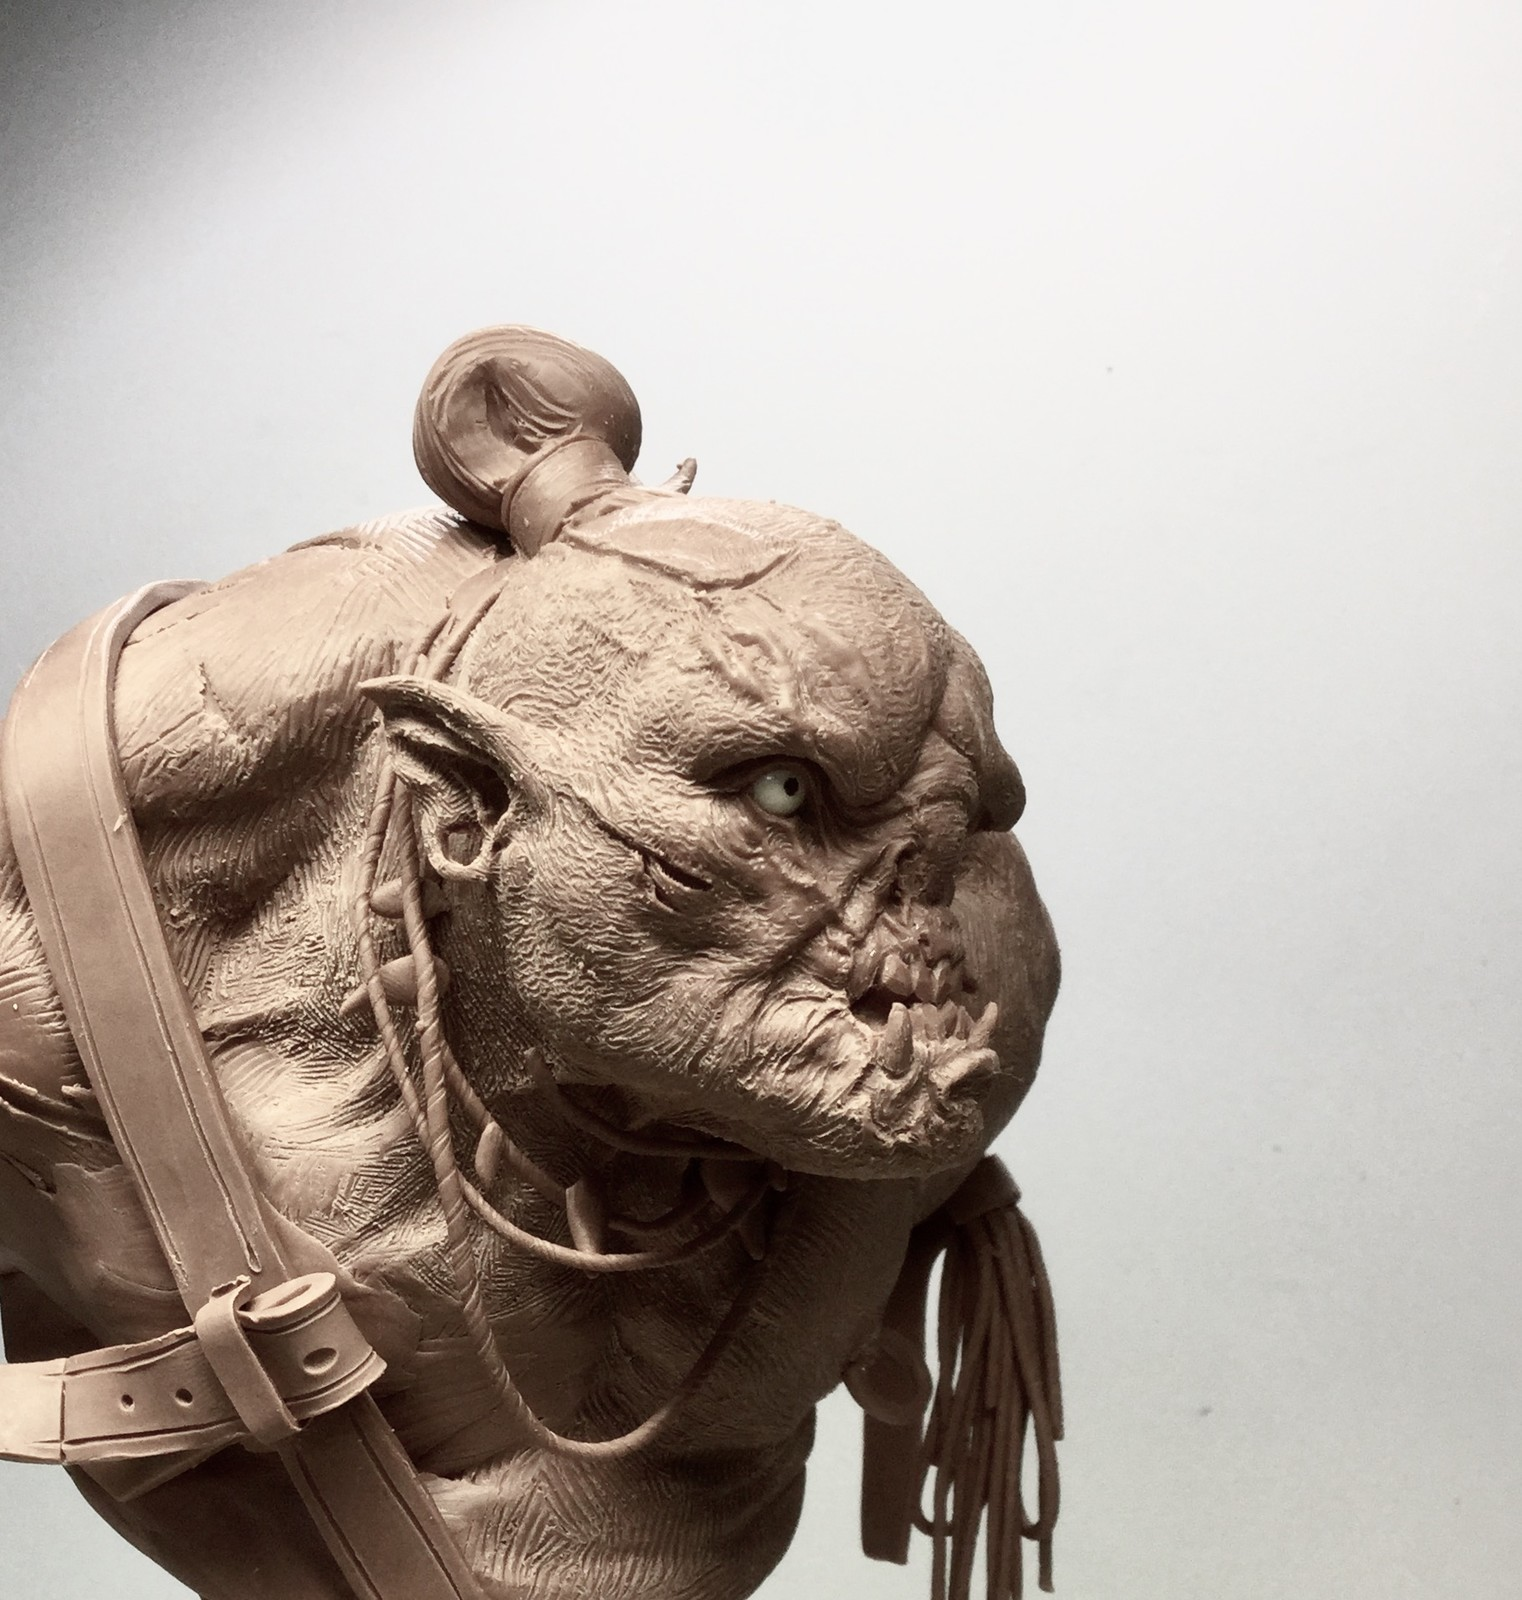 Orc/ Monster clay